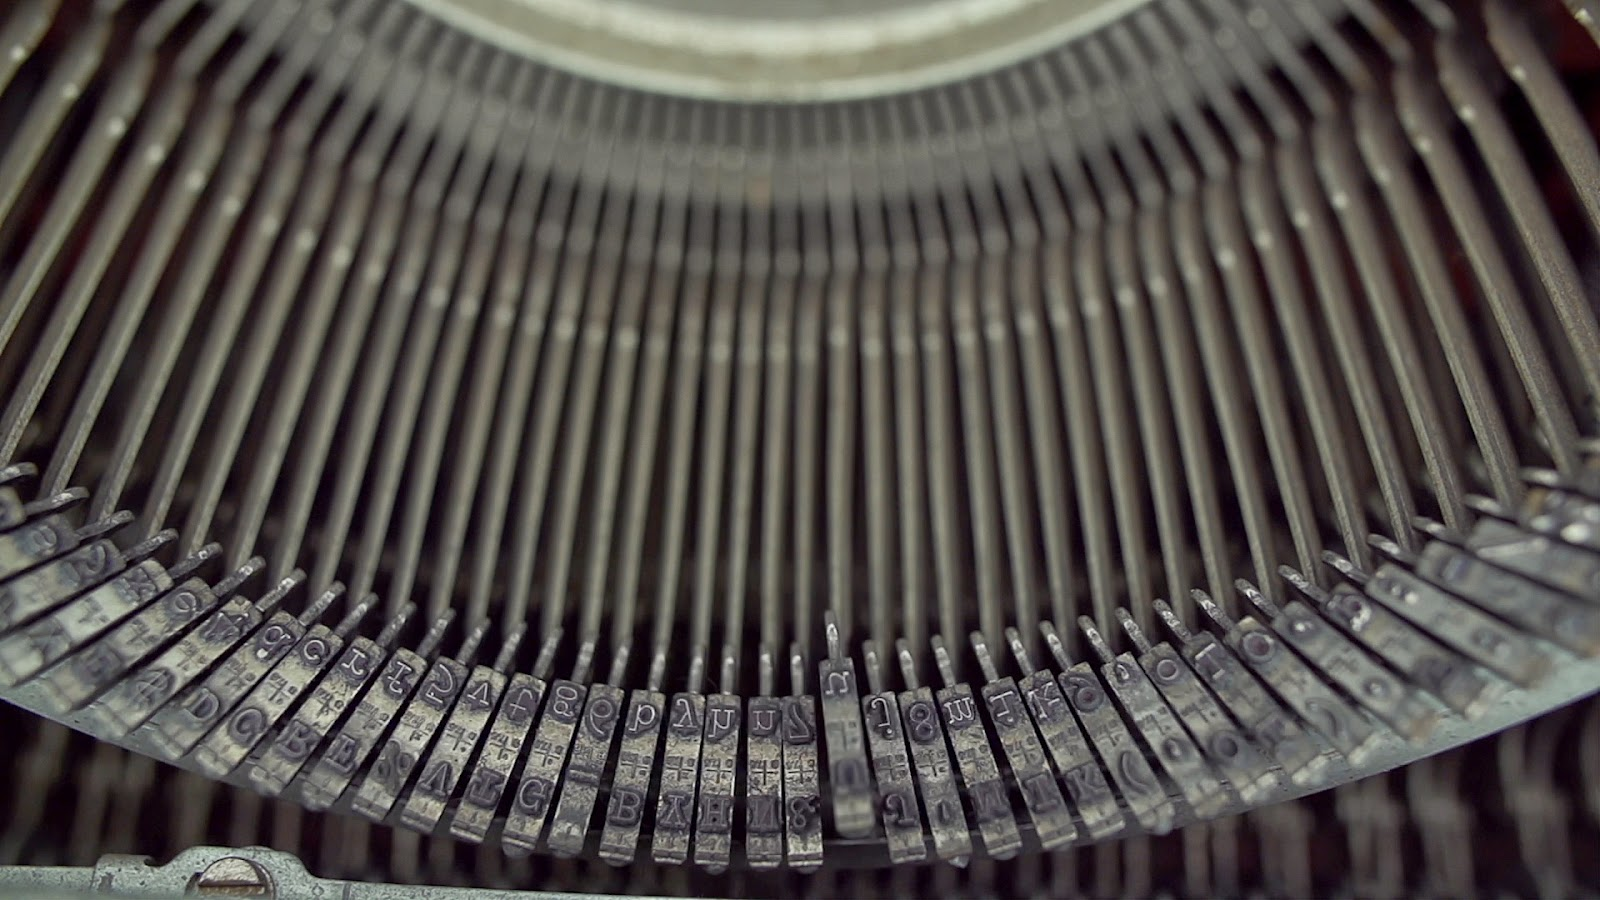 Typewriter Close Up Slow; Reverse Angle